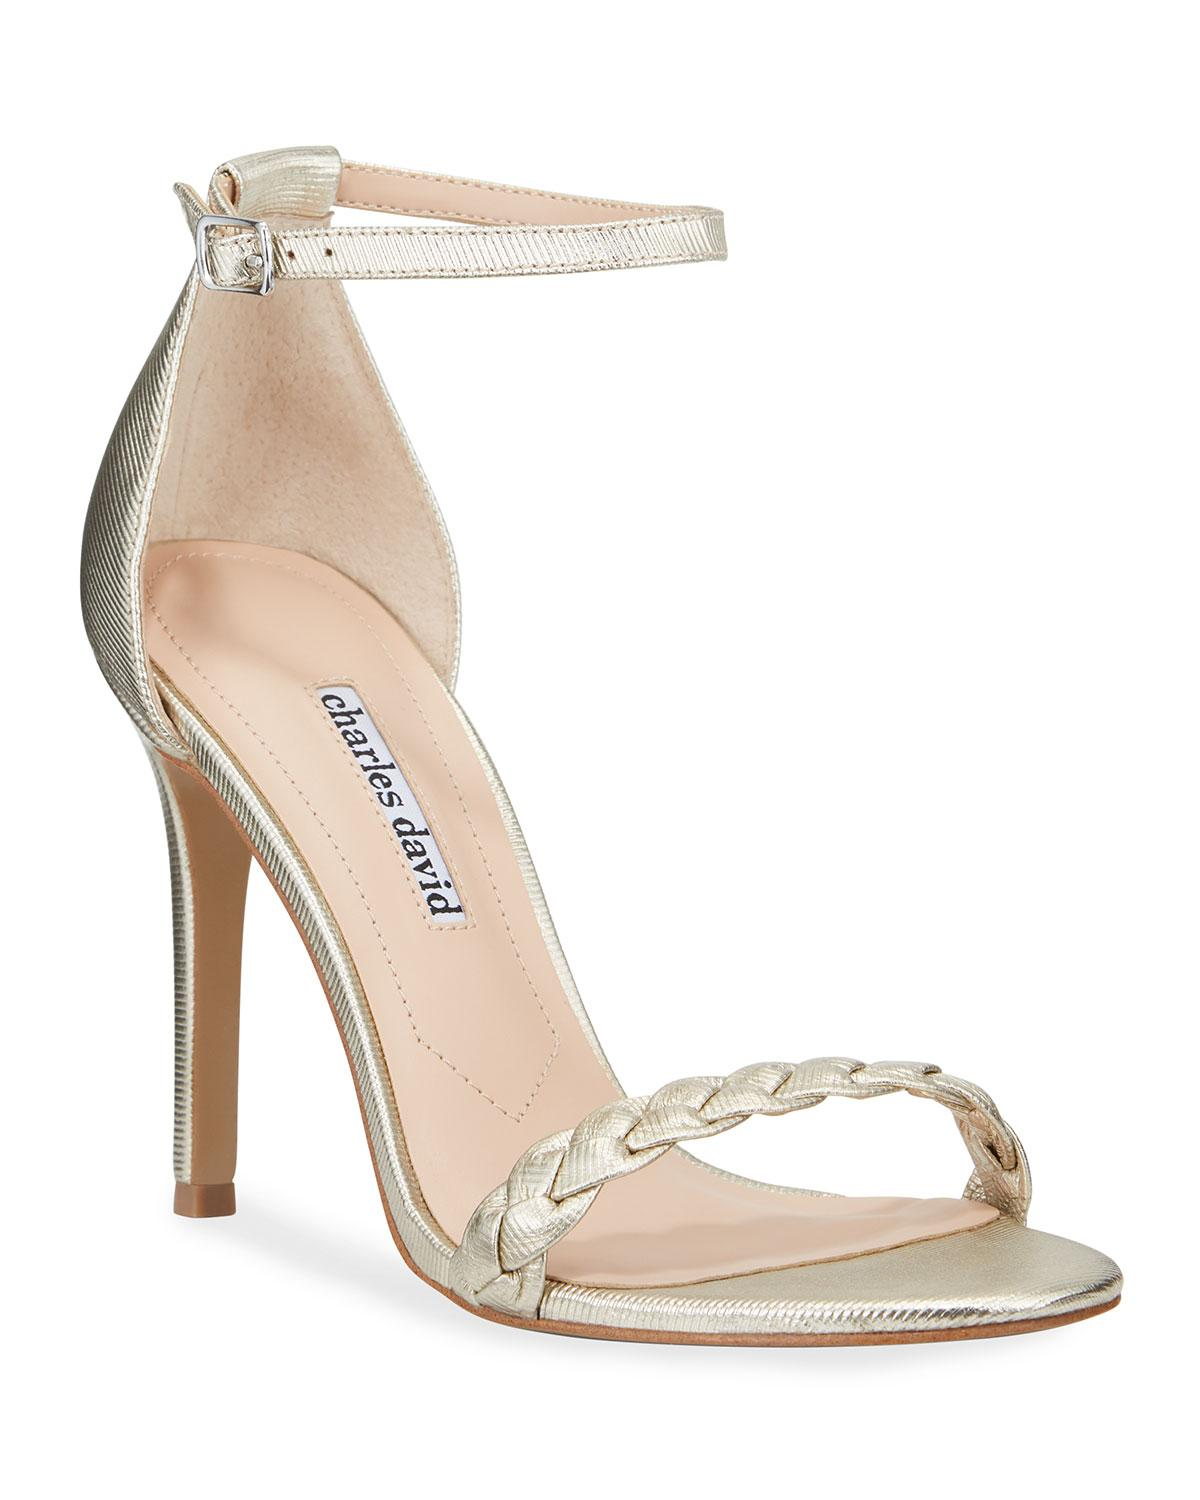 2e48a9189fe1 Charles David - Metallic Woven Leather Ankle-strap Sandals - Lyst. View  fullscreen